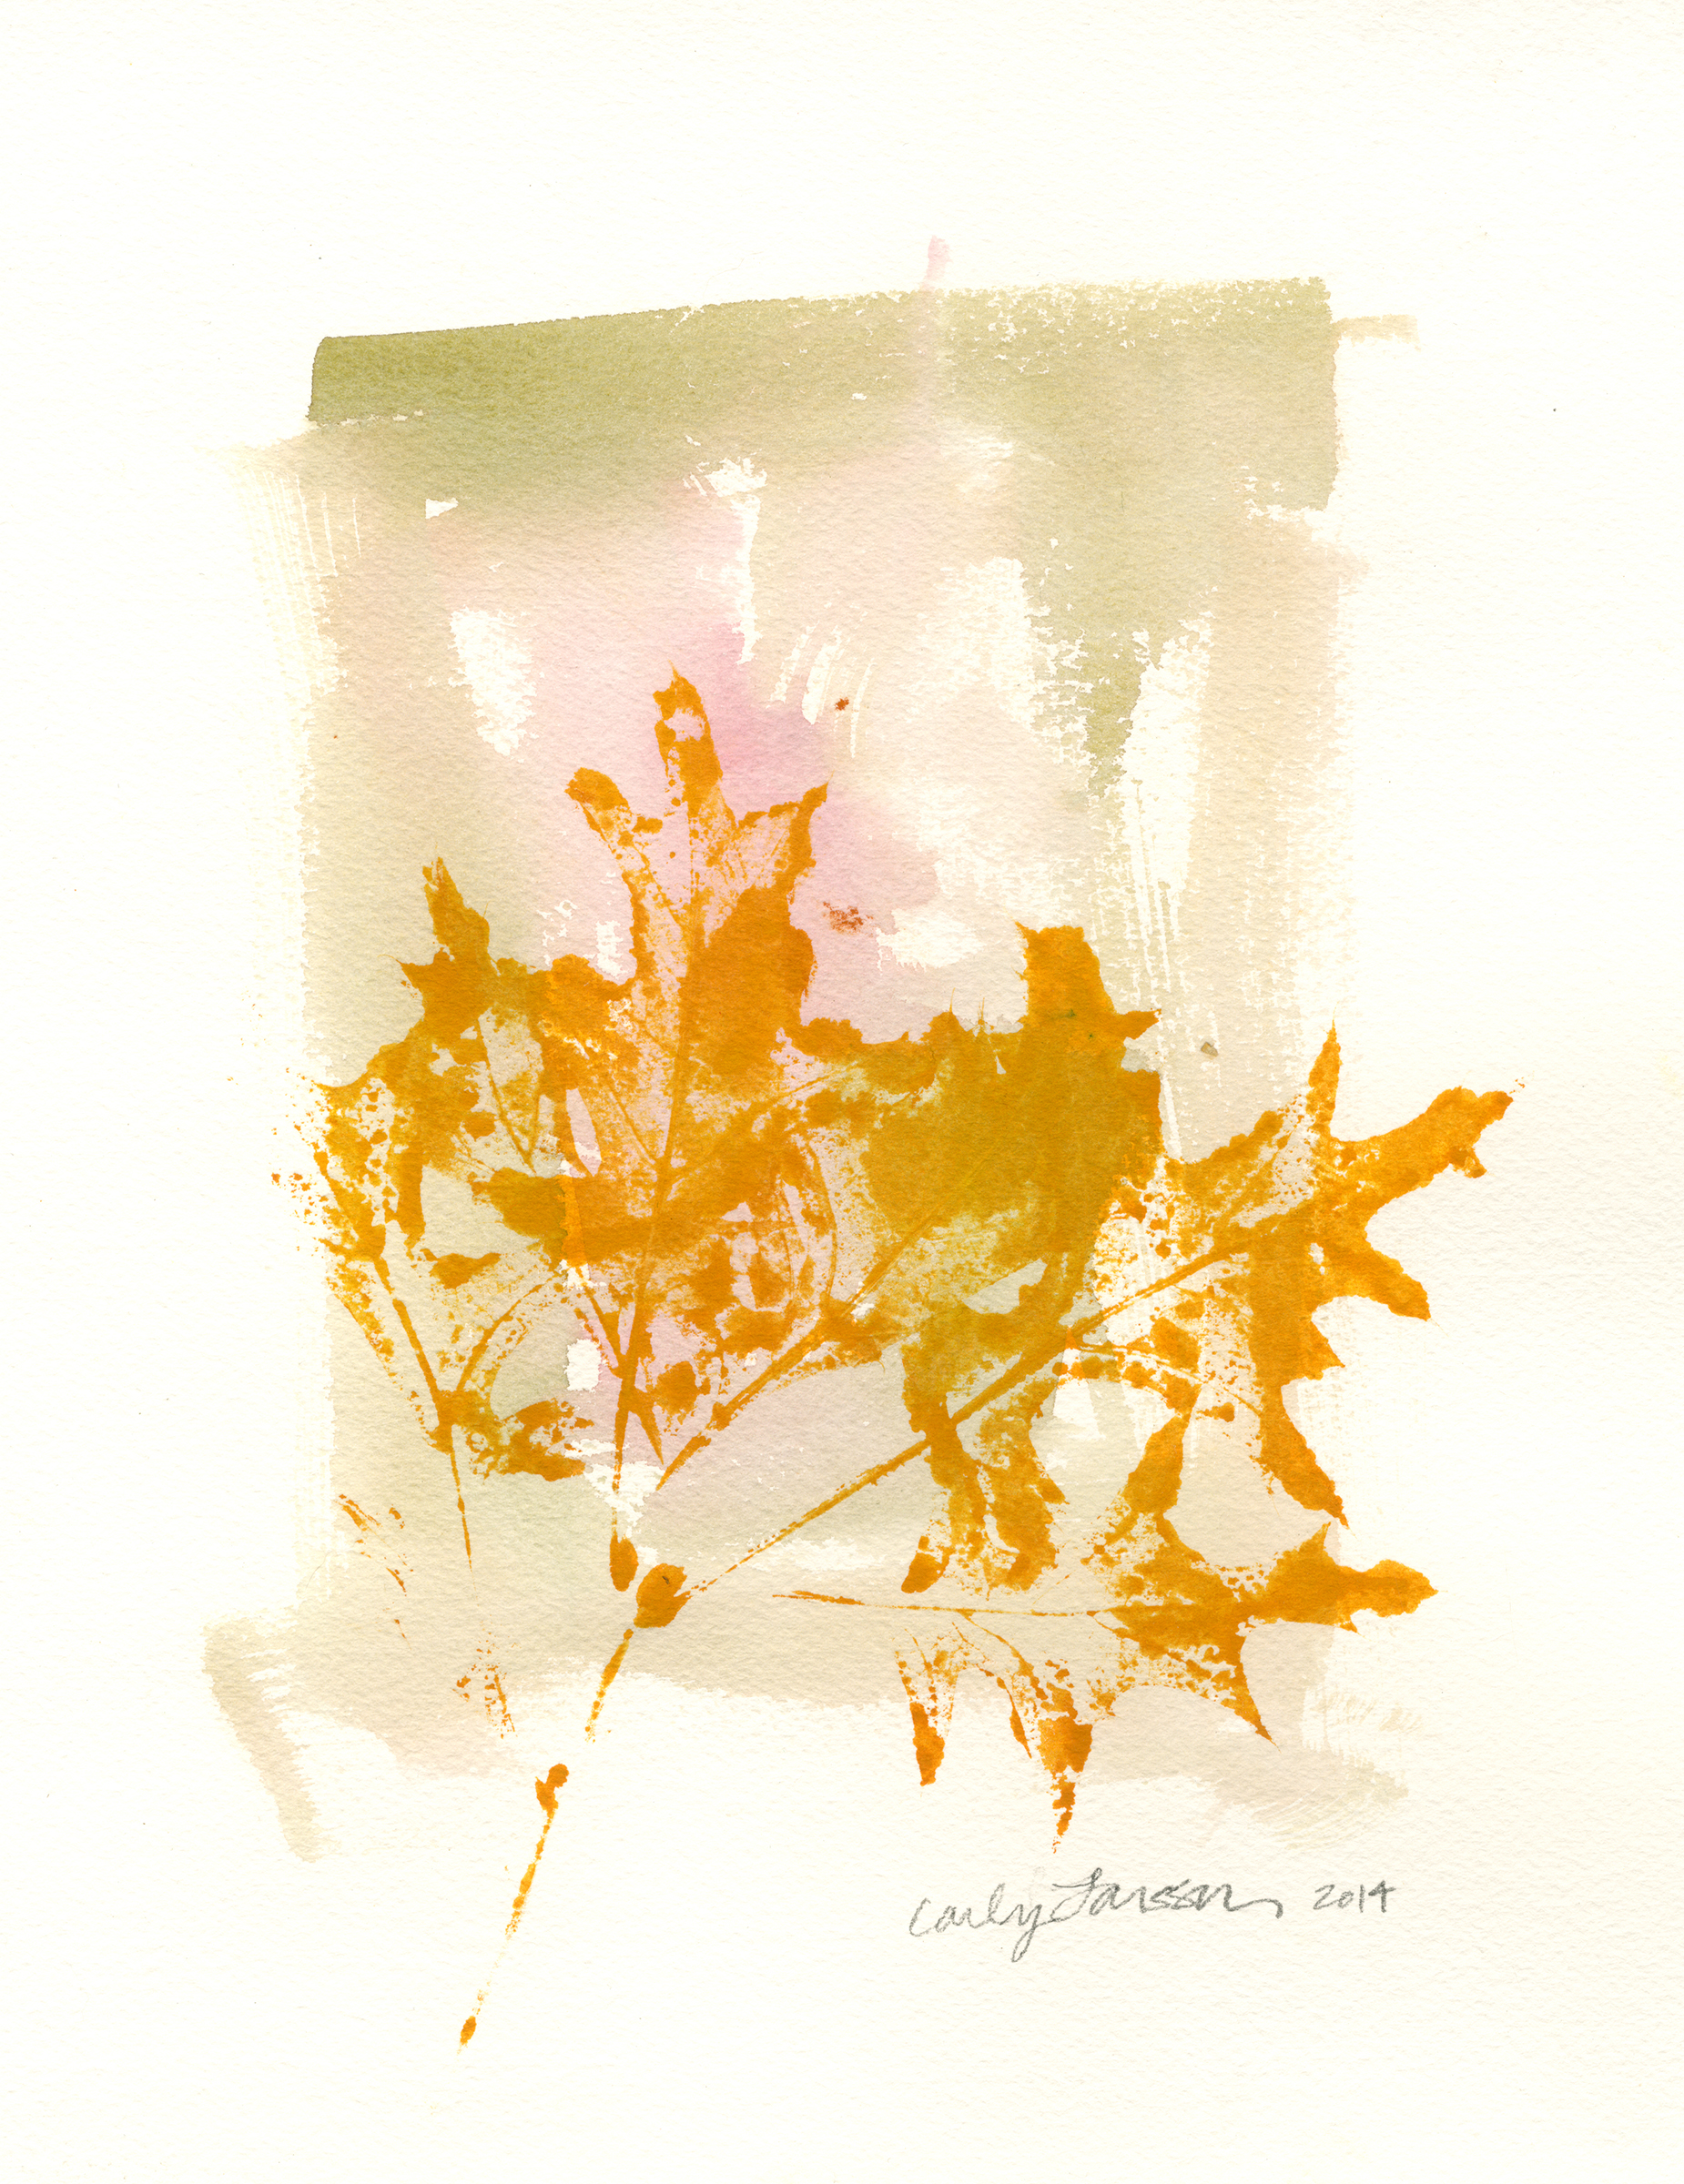 Scarlet oak leaves, watercolor and gouache on Arches cold press 140lb watercolor paper. © Carly Larsson 2014.